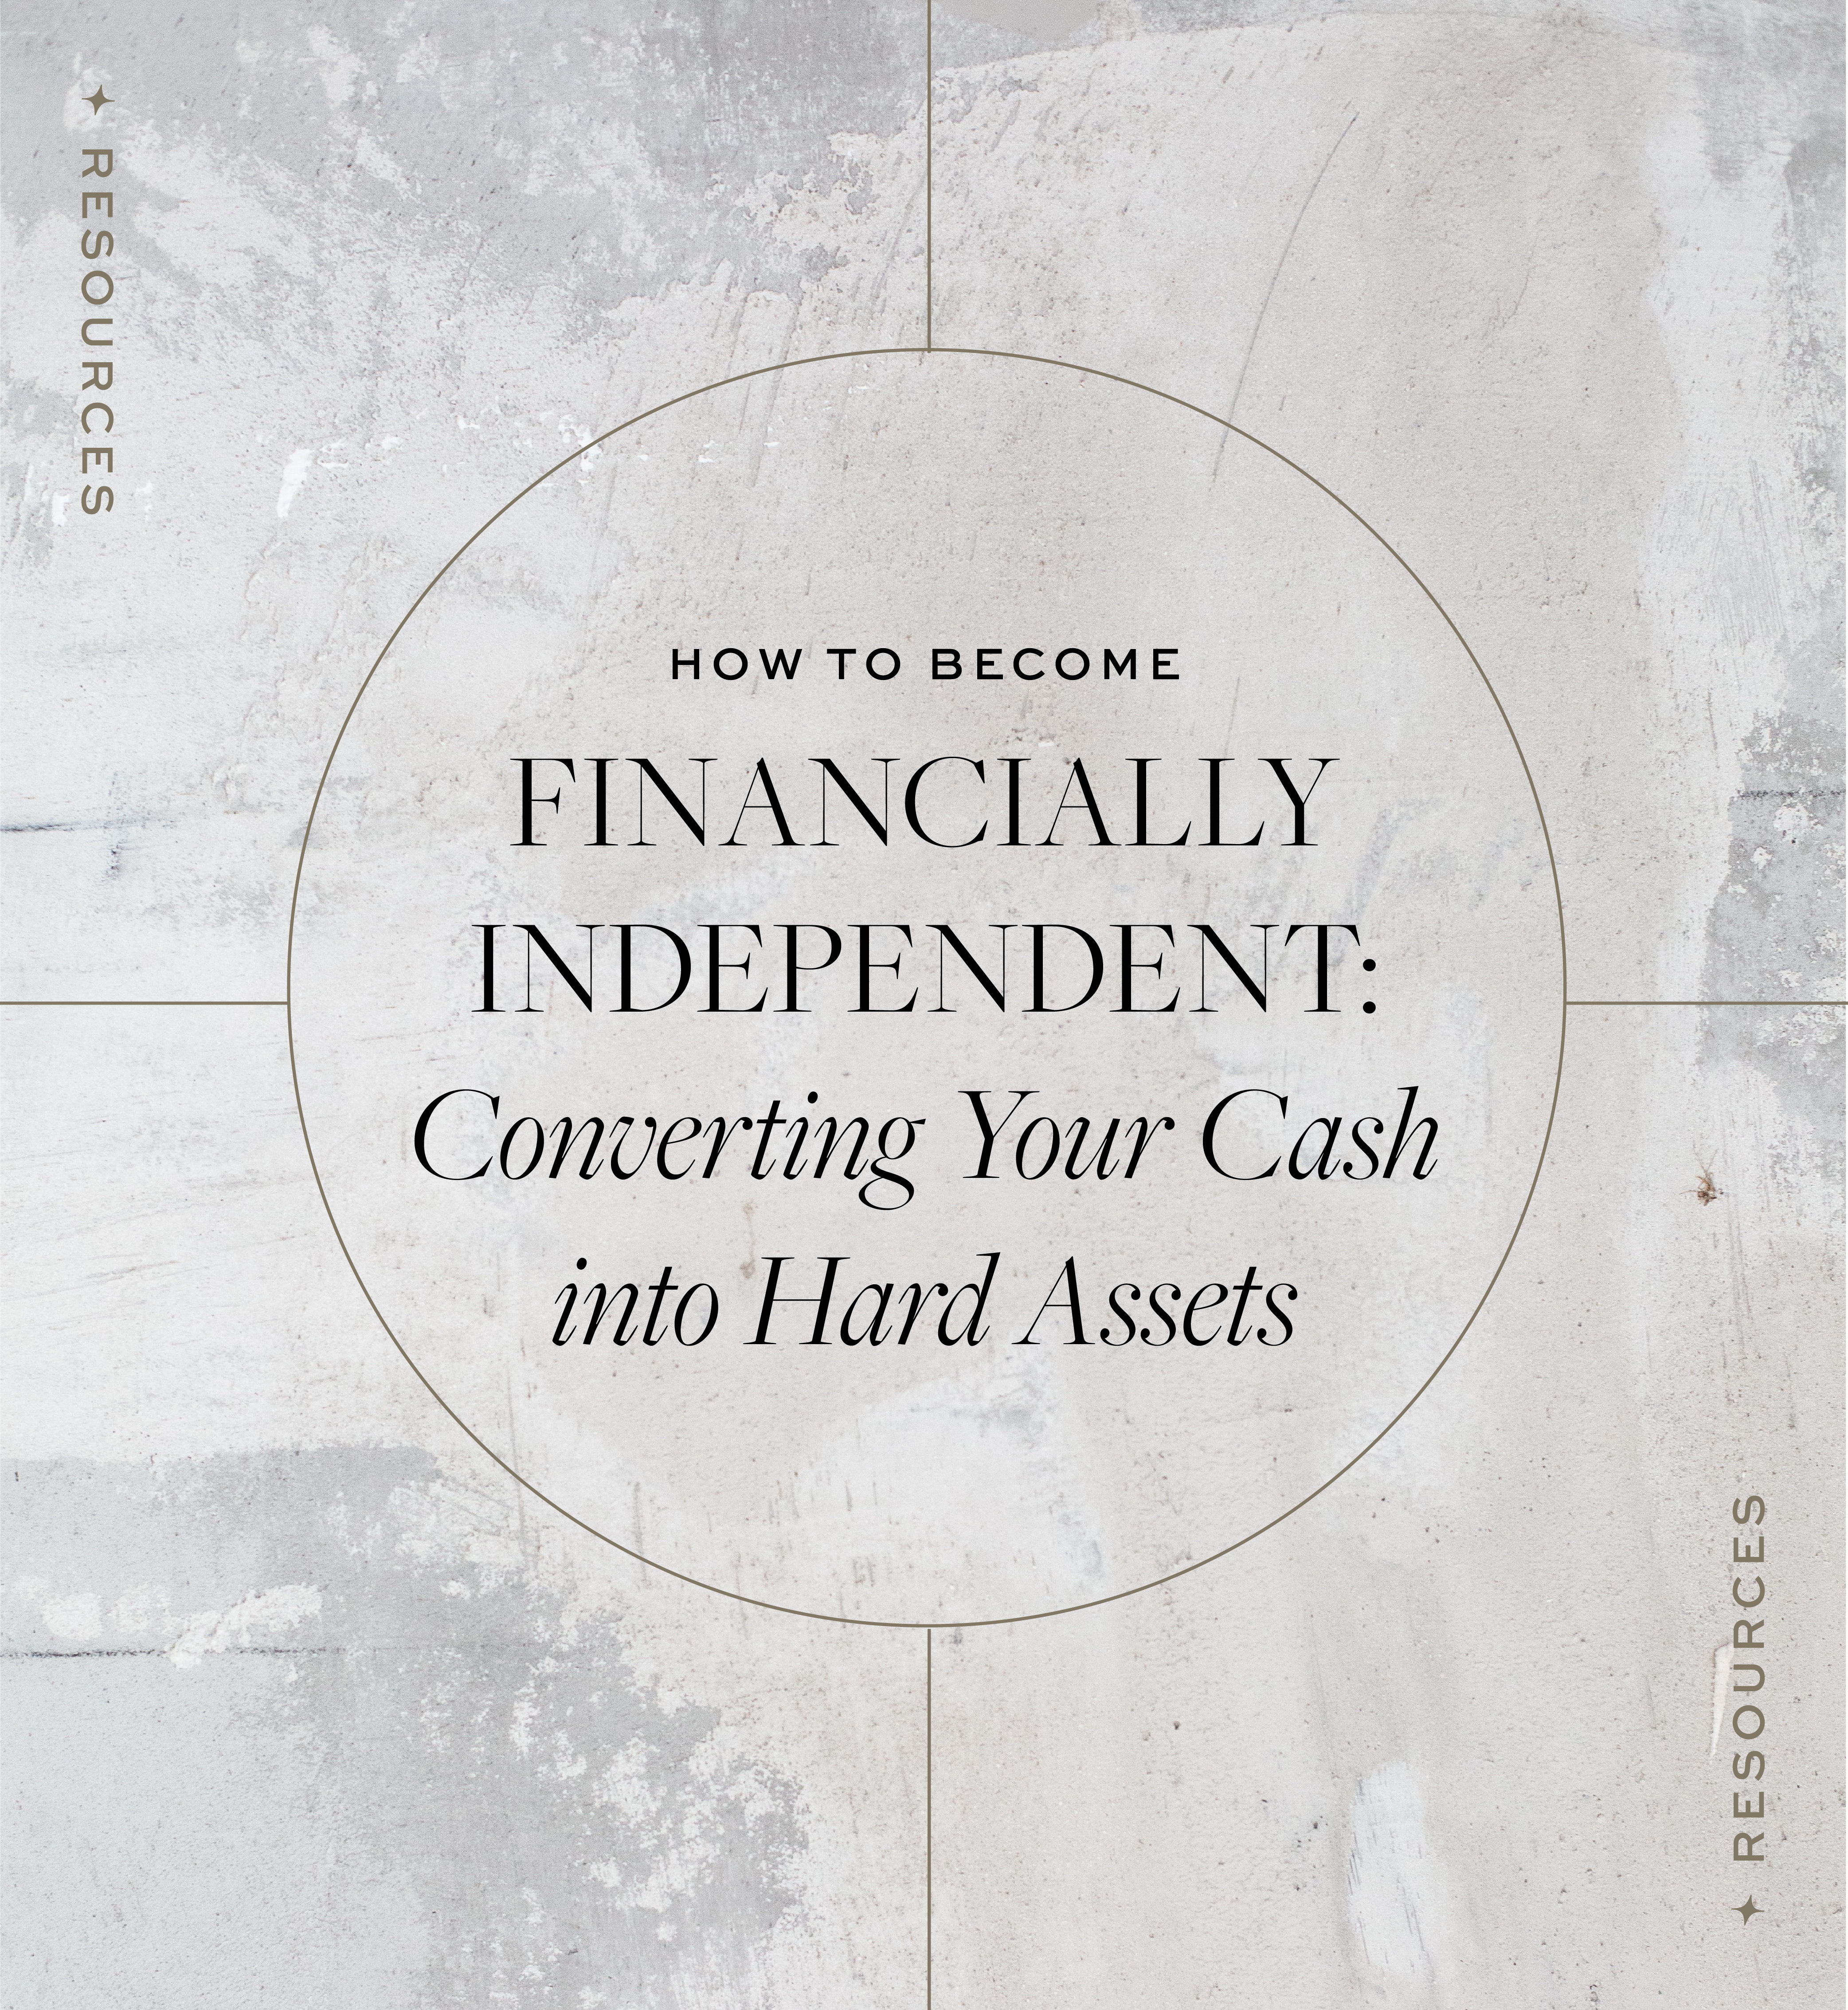 Blog Post: How To Become Financially Independent: Converting Your Cash Into Hard Assets